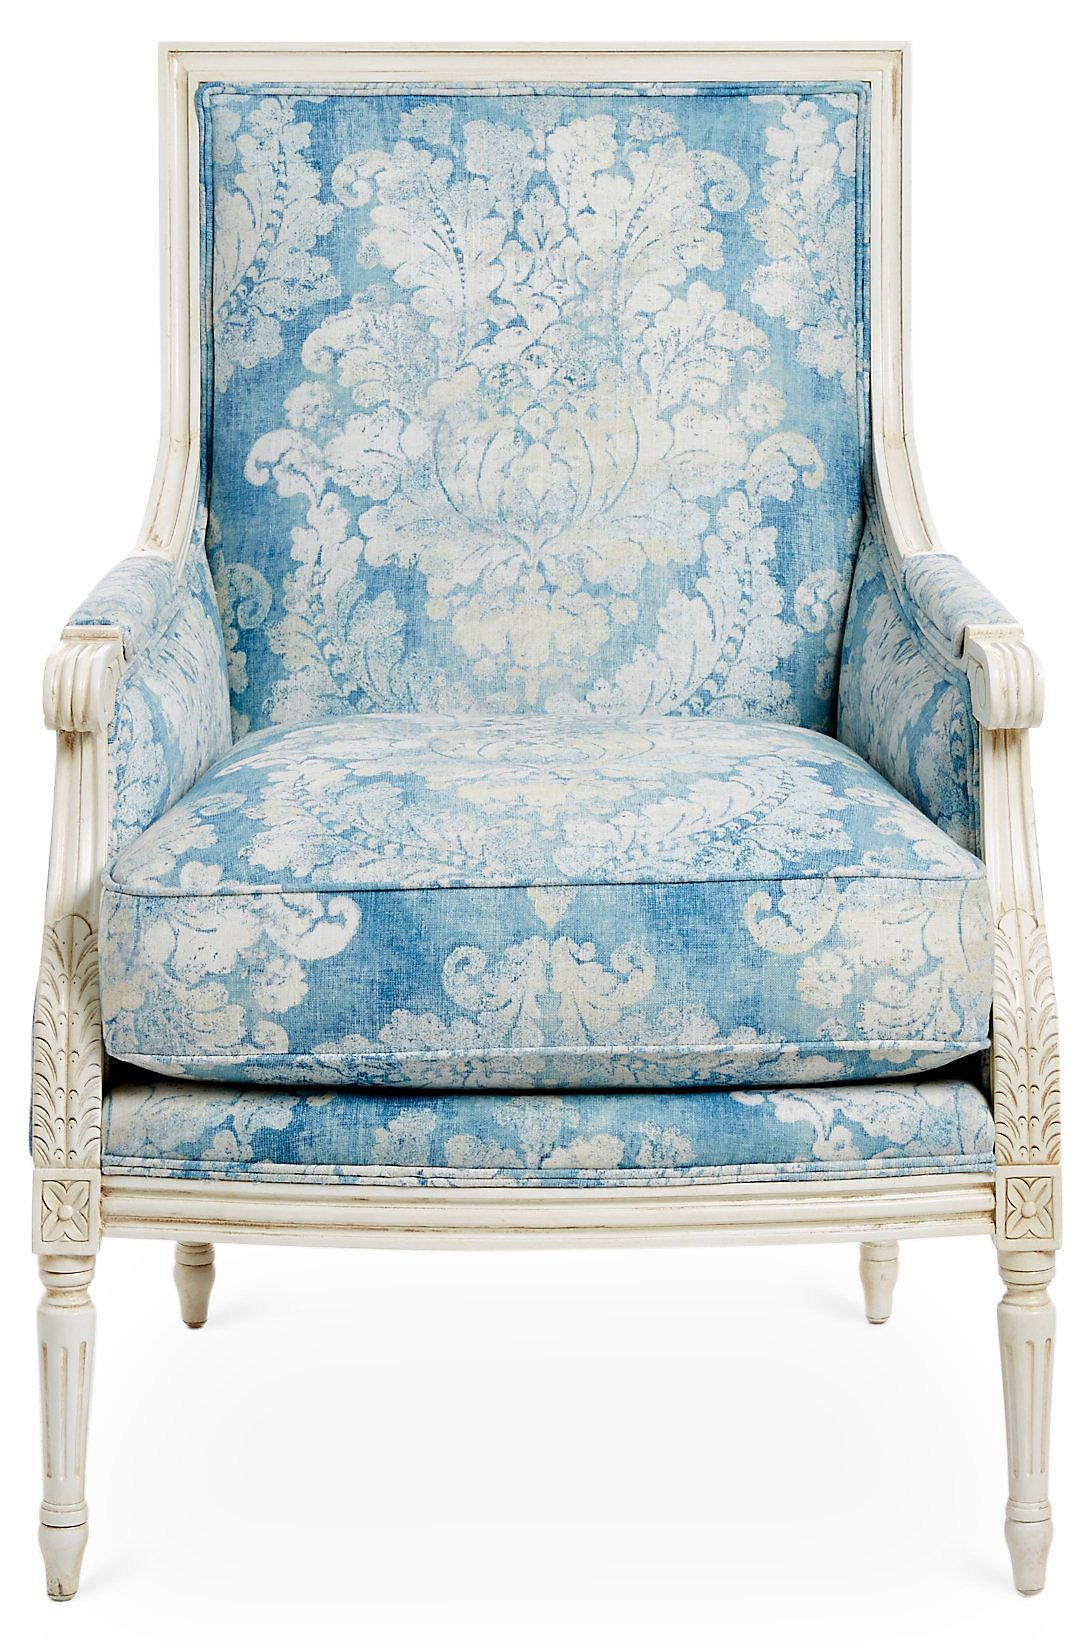 Best James Accent Chair Blue Floral One Kings Lane Accent 400 x 300